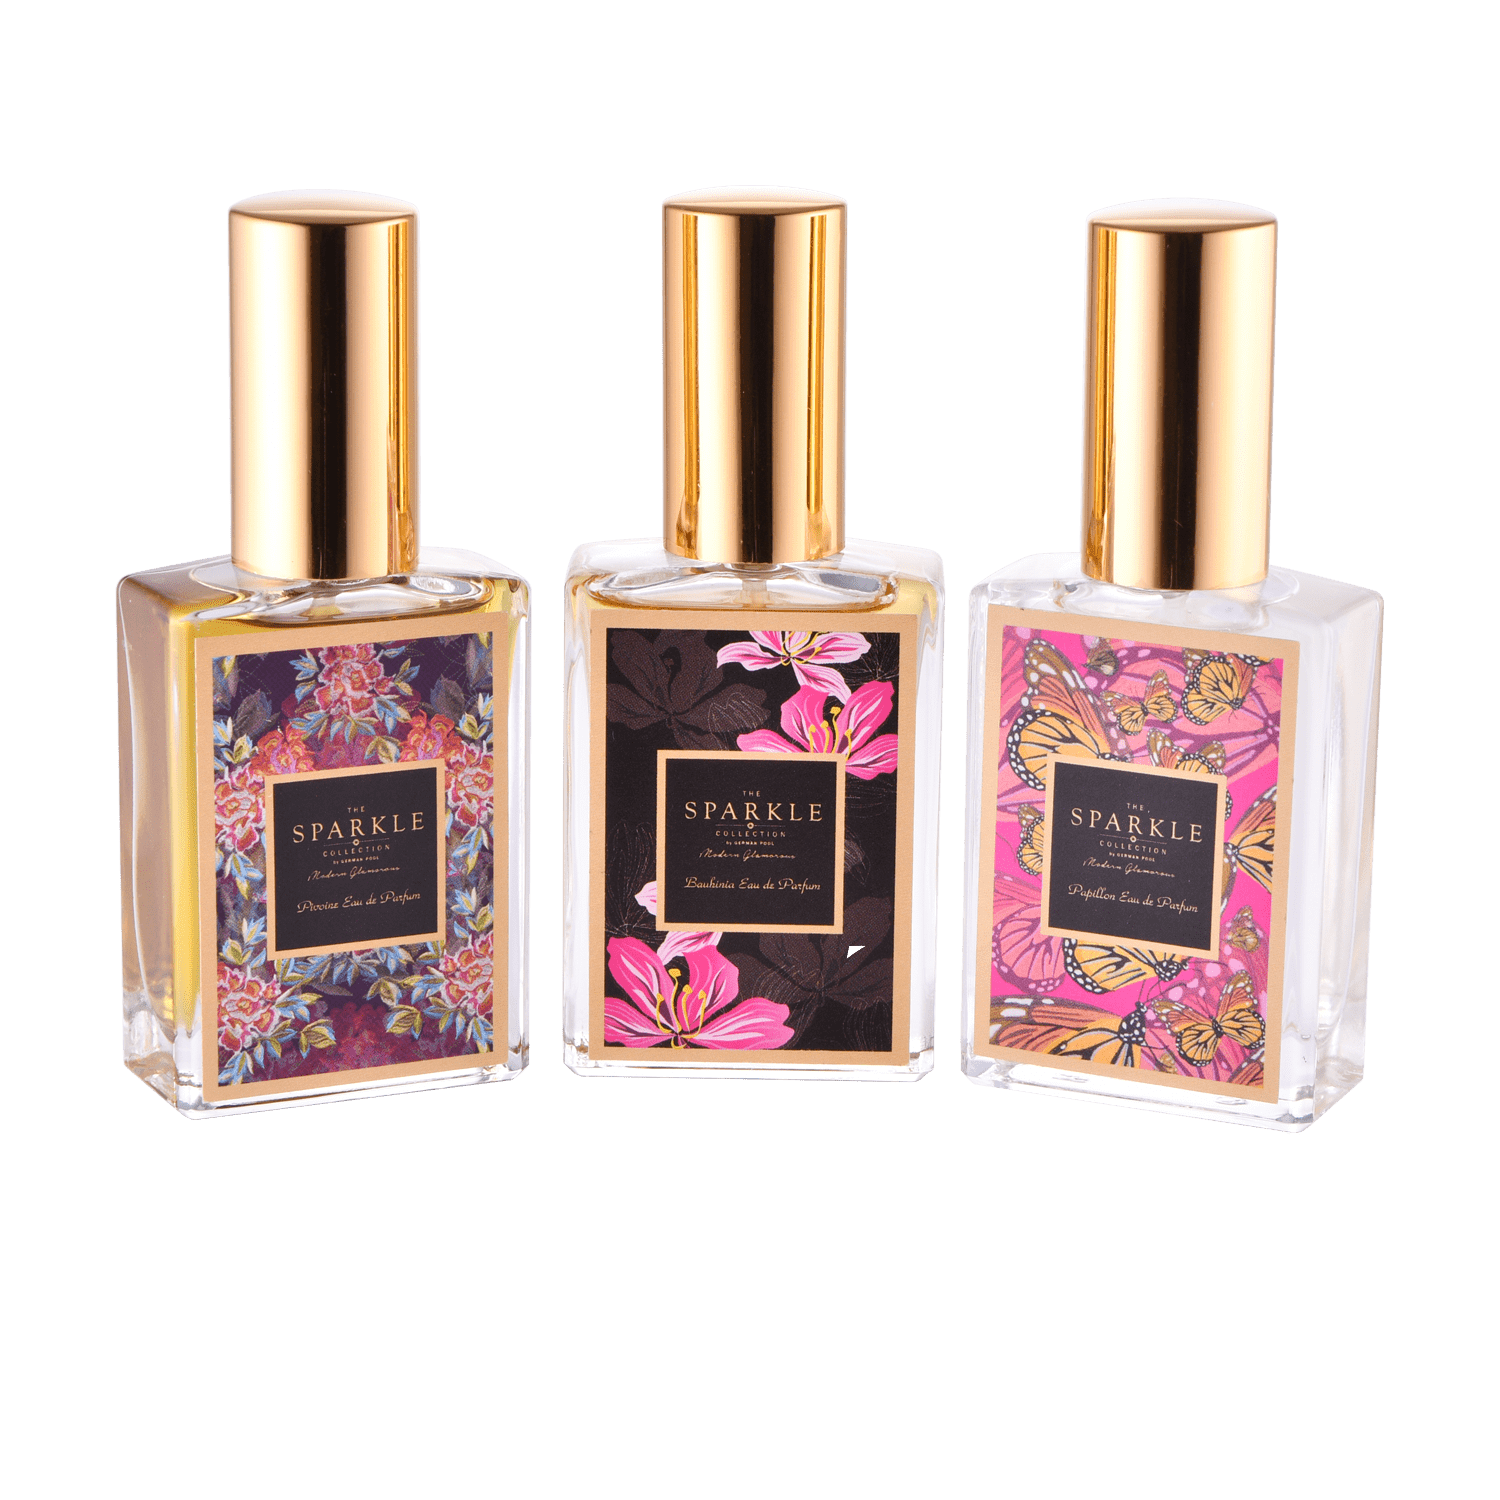 【BAUHINIA】Bauhinia Eau de Perfume-30ml - THE SPARKLE COLLECTION by GERMAN POOL